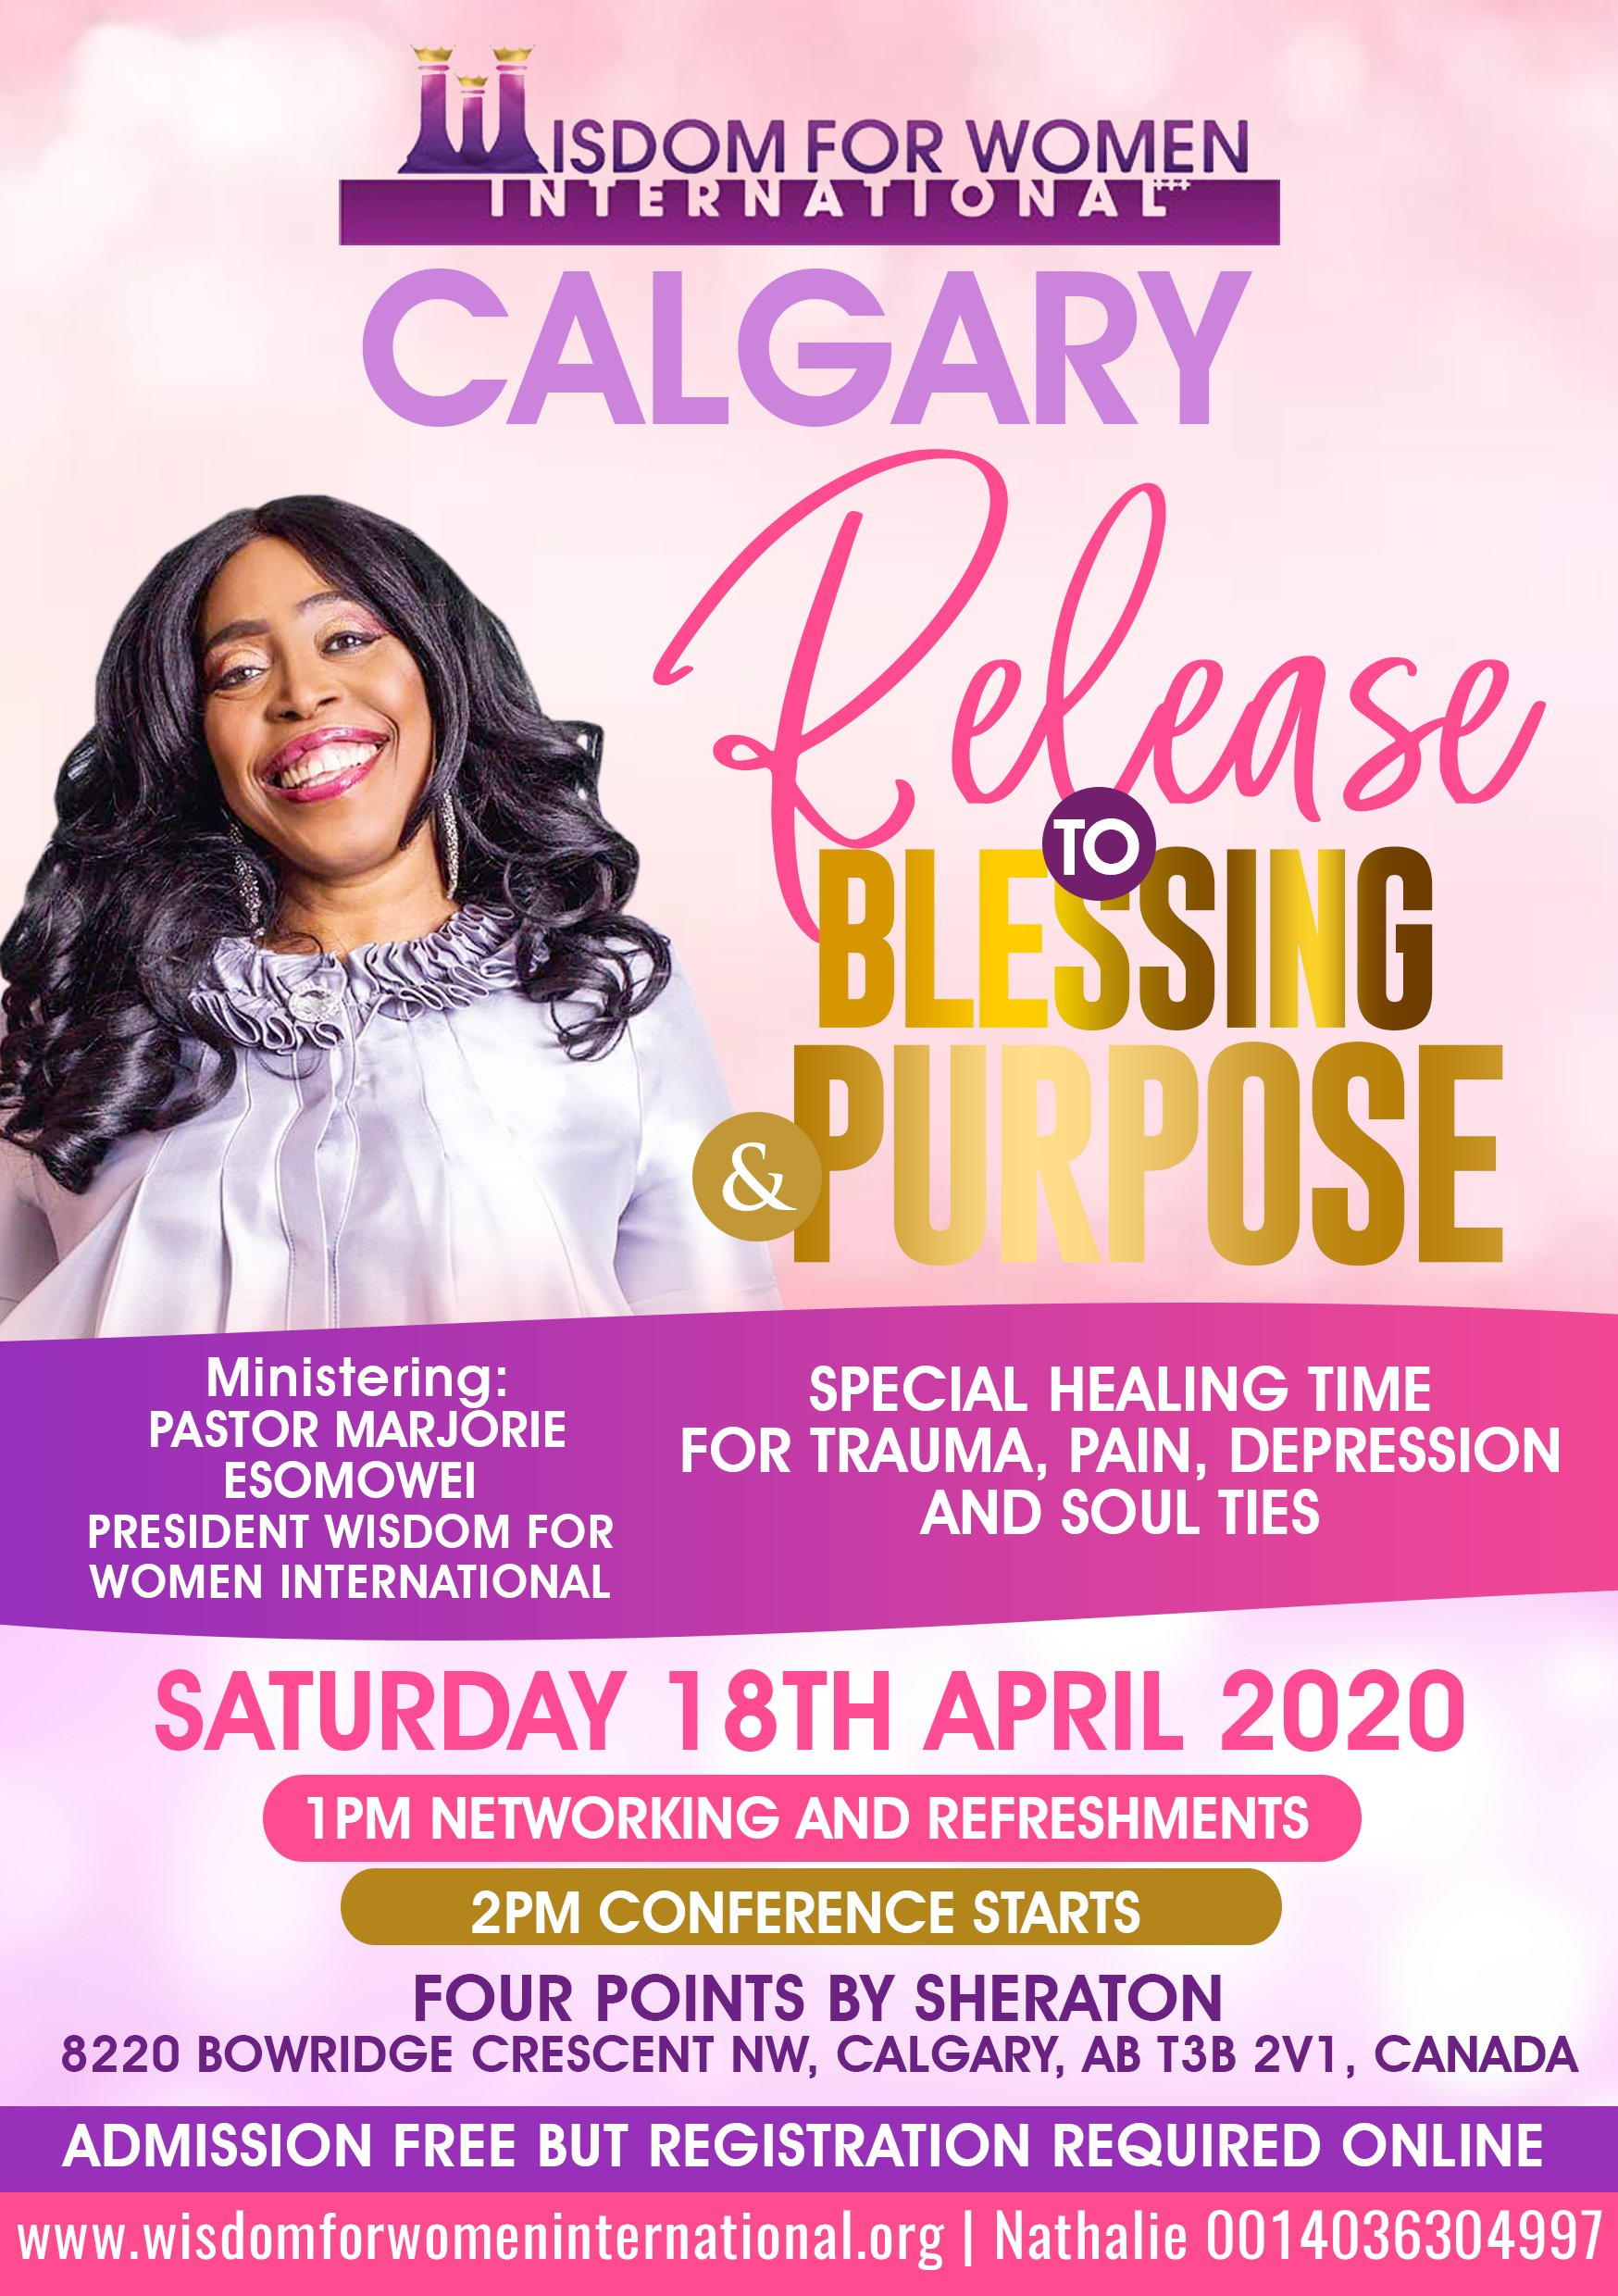 Release to Blessing & Purpose